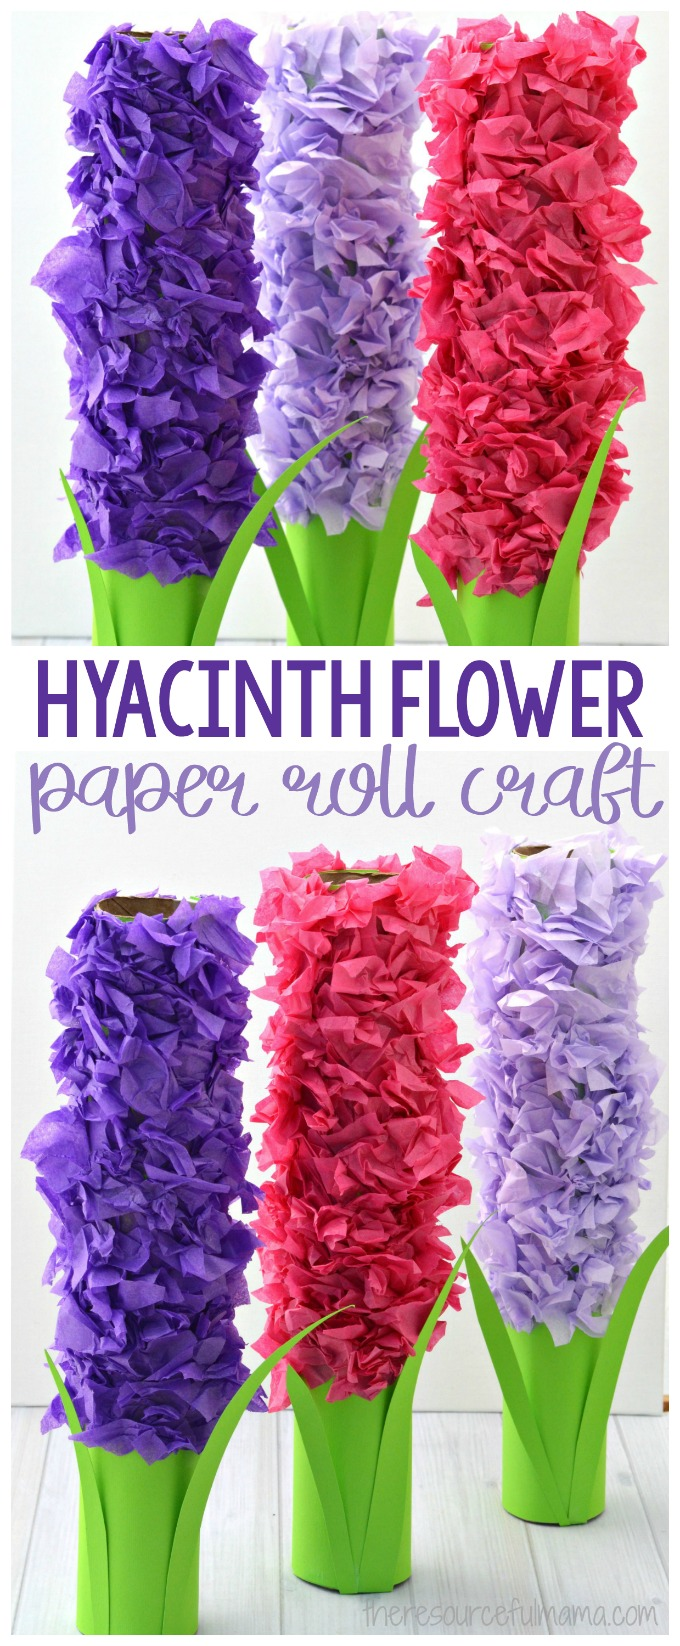 Transform paper towel rolls and tissue paper into a lovely hyacinth flower craft kids can make this spring.